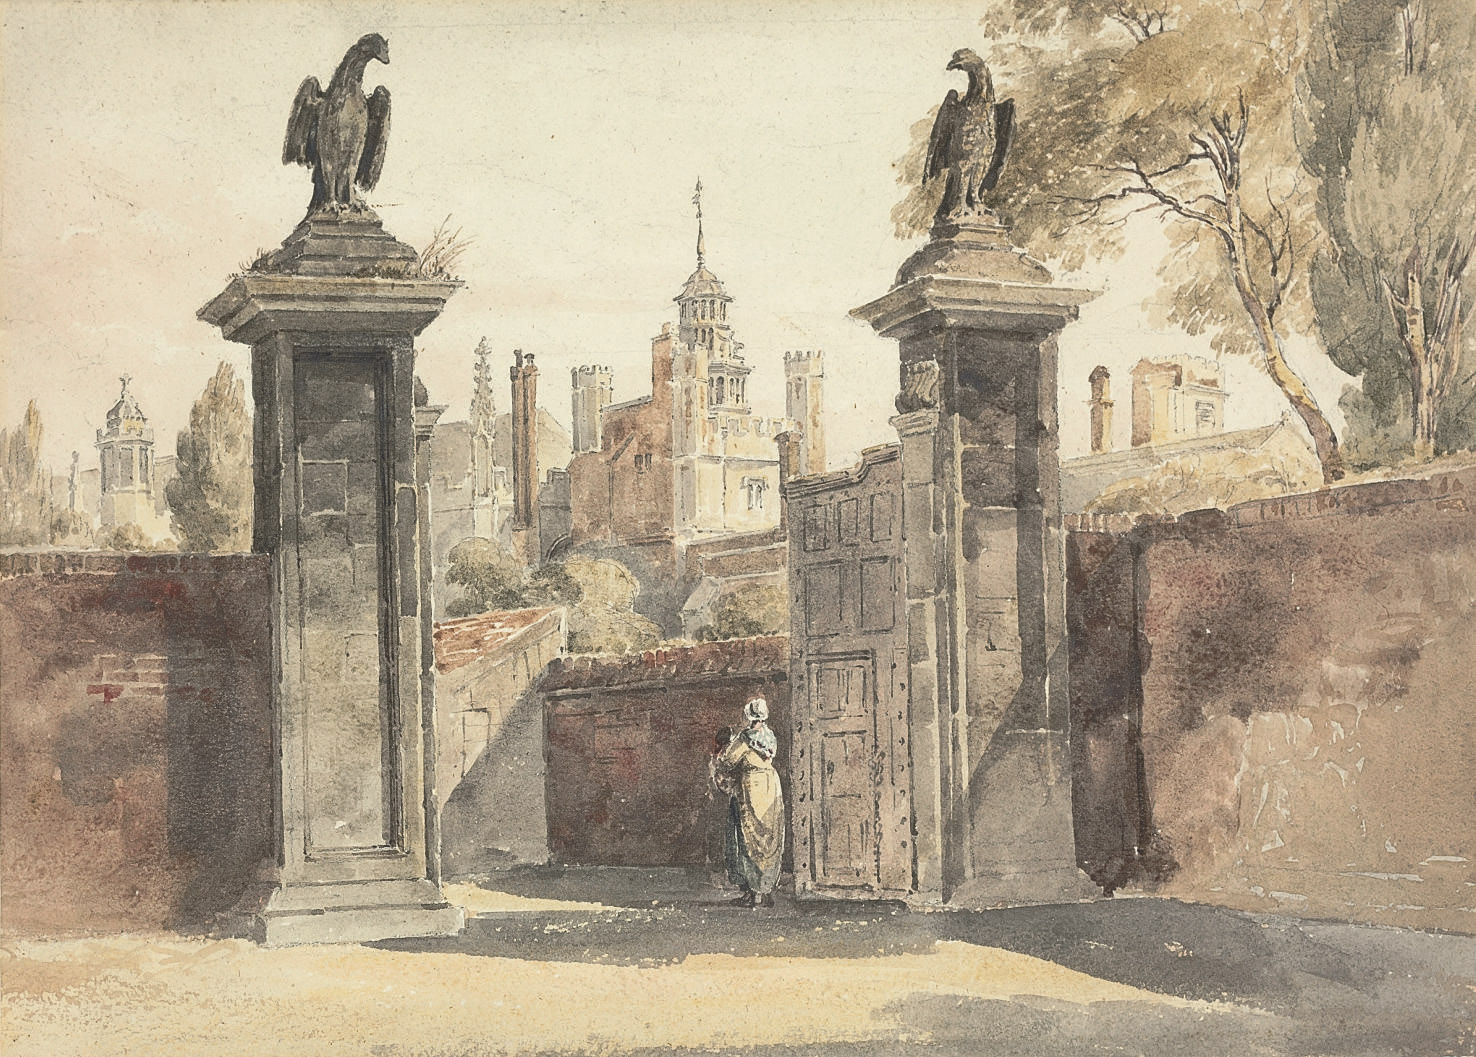 View of the gates of St John's College, Cambridge with Trinity College beyond